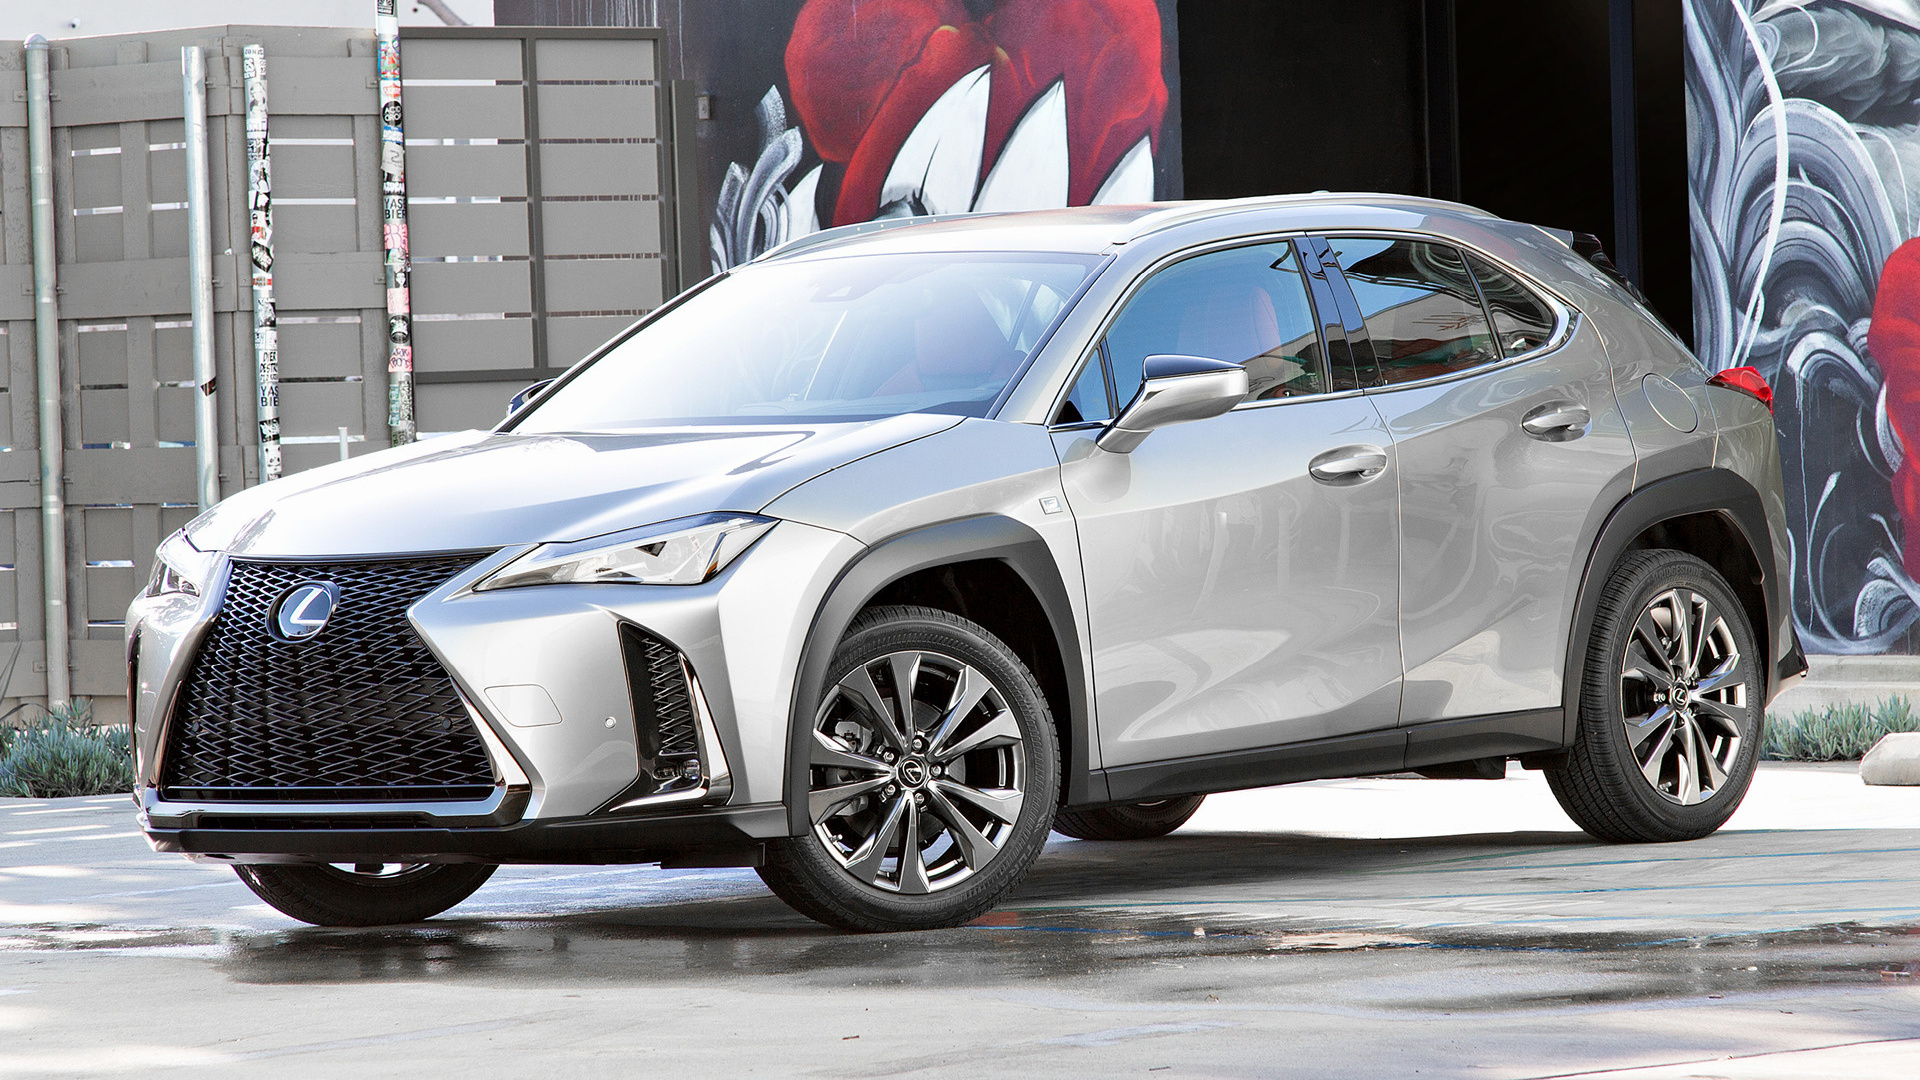 2019 Lexus UX F Sport (US) - Wallpapers and HD Images ...